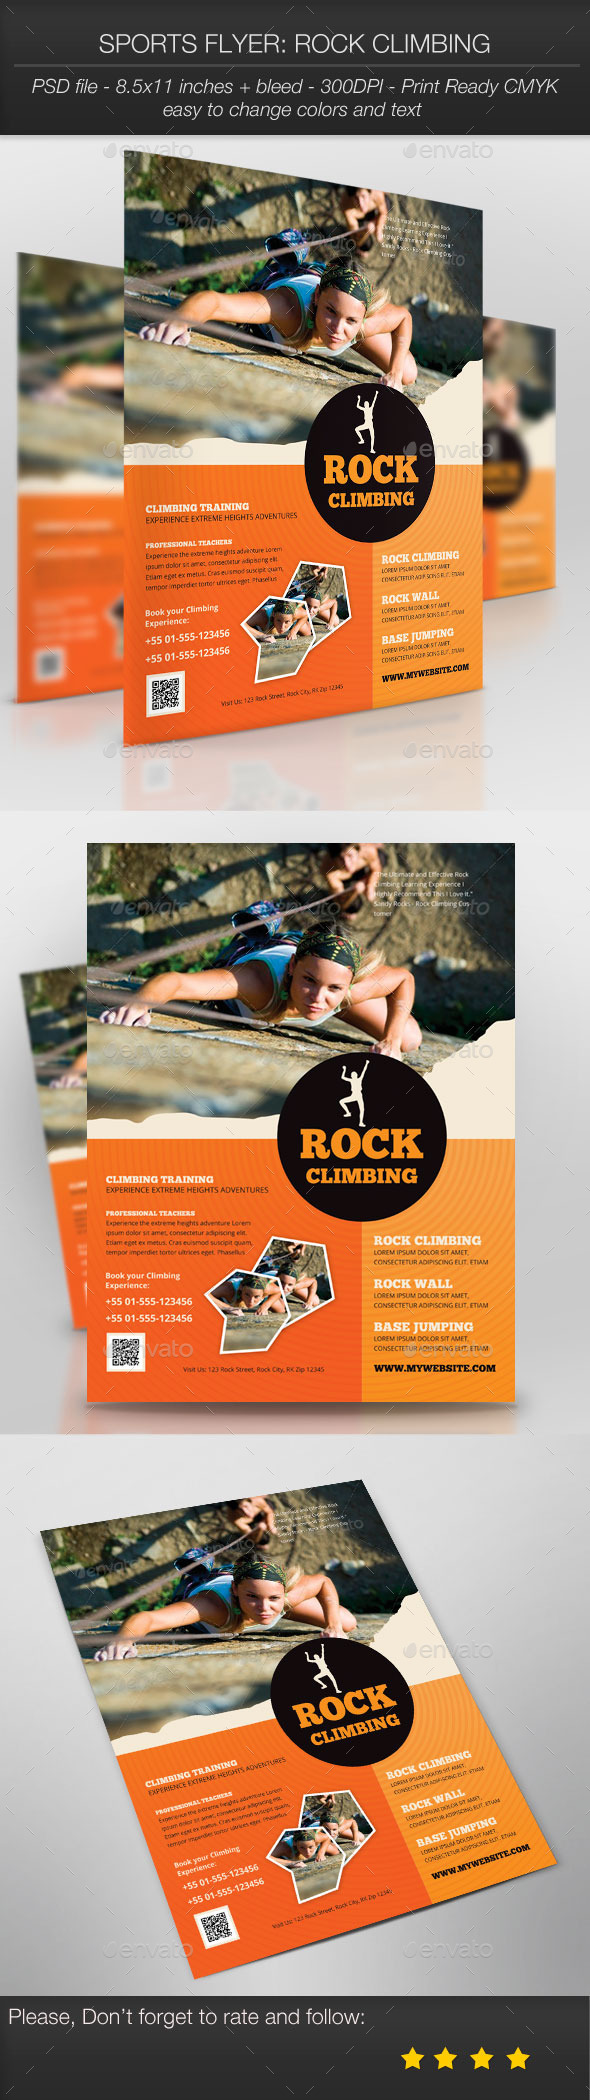 GraphicRiver Sports Flyer Rock Climbing 10049698